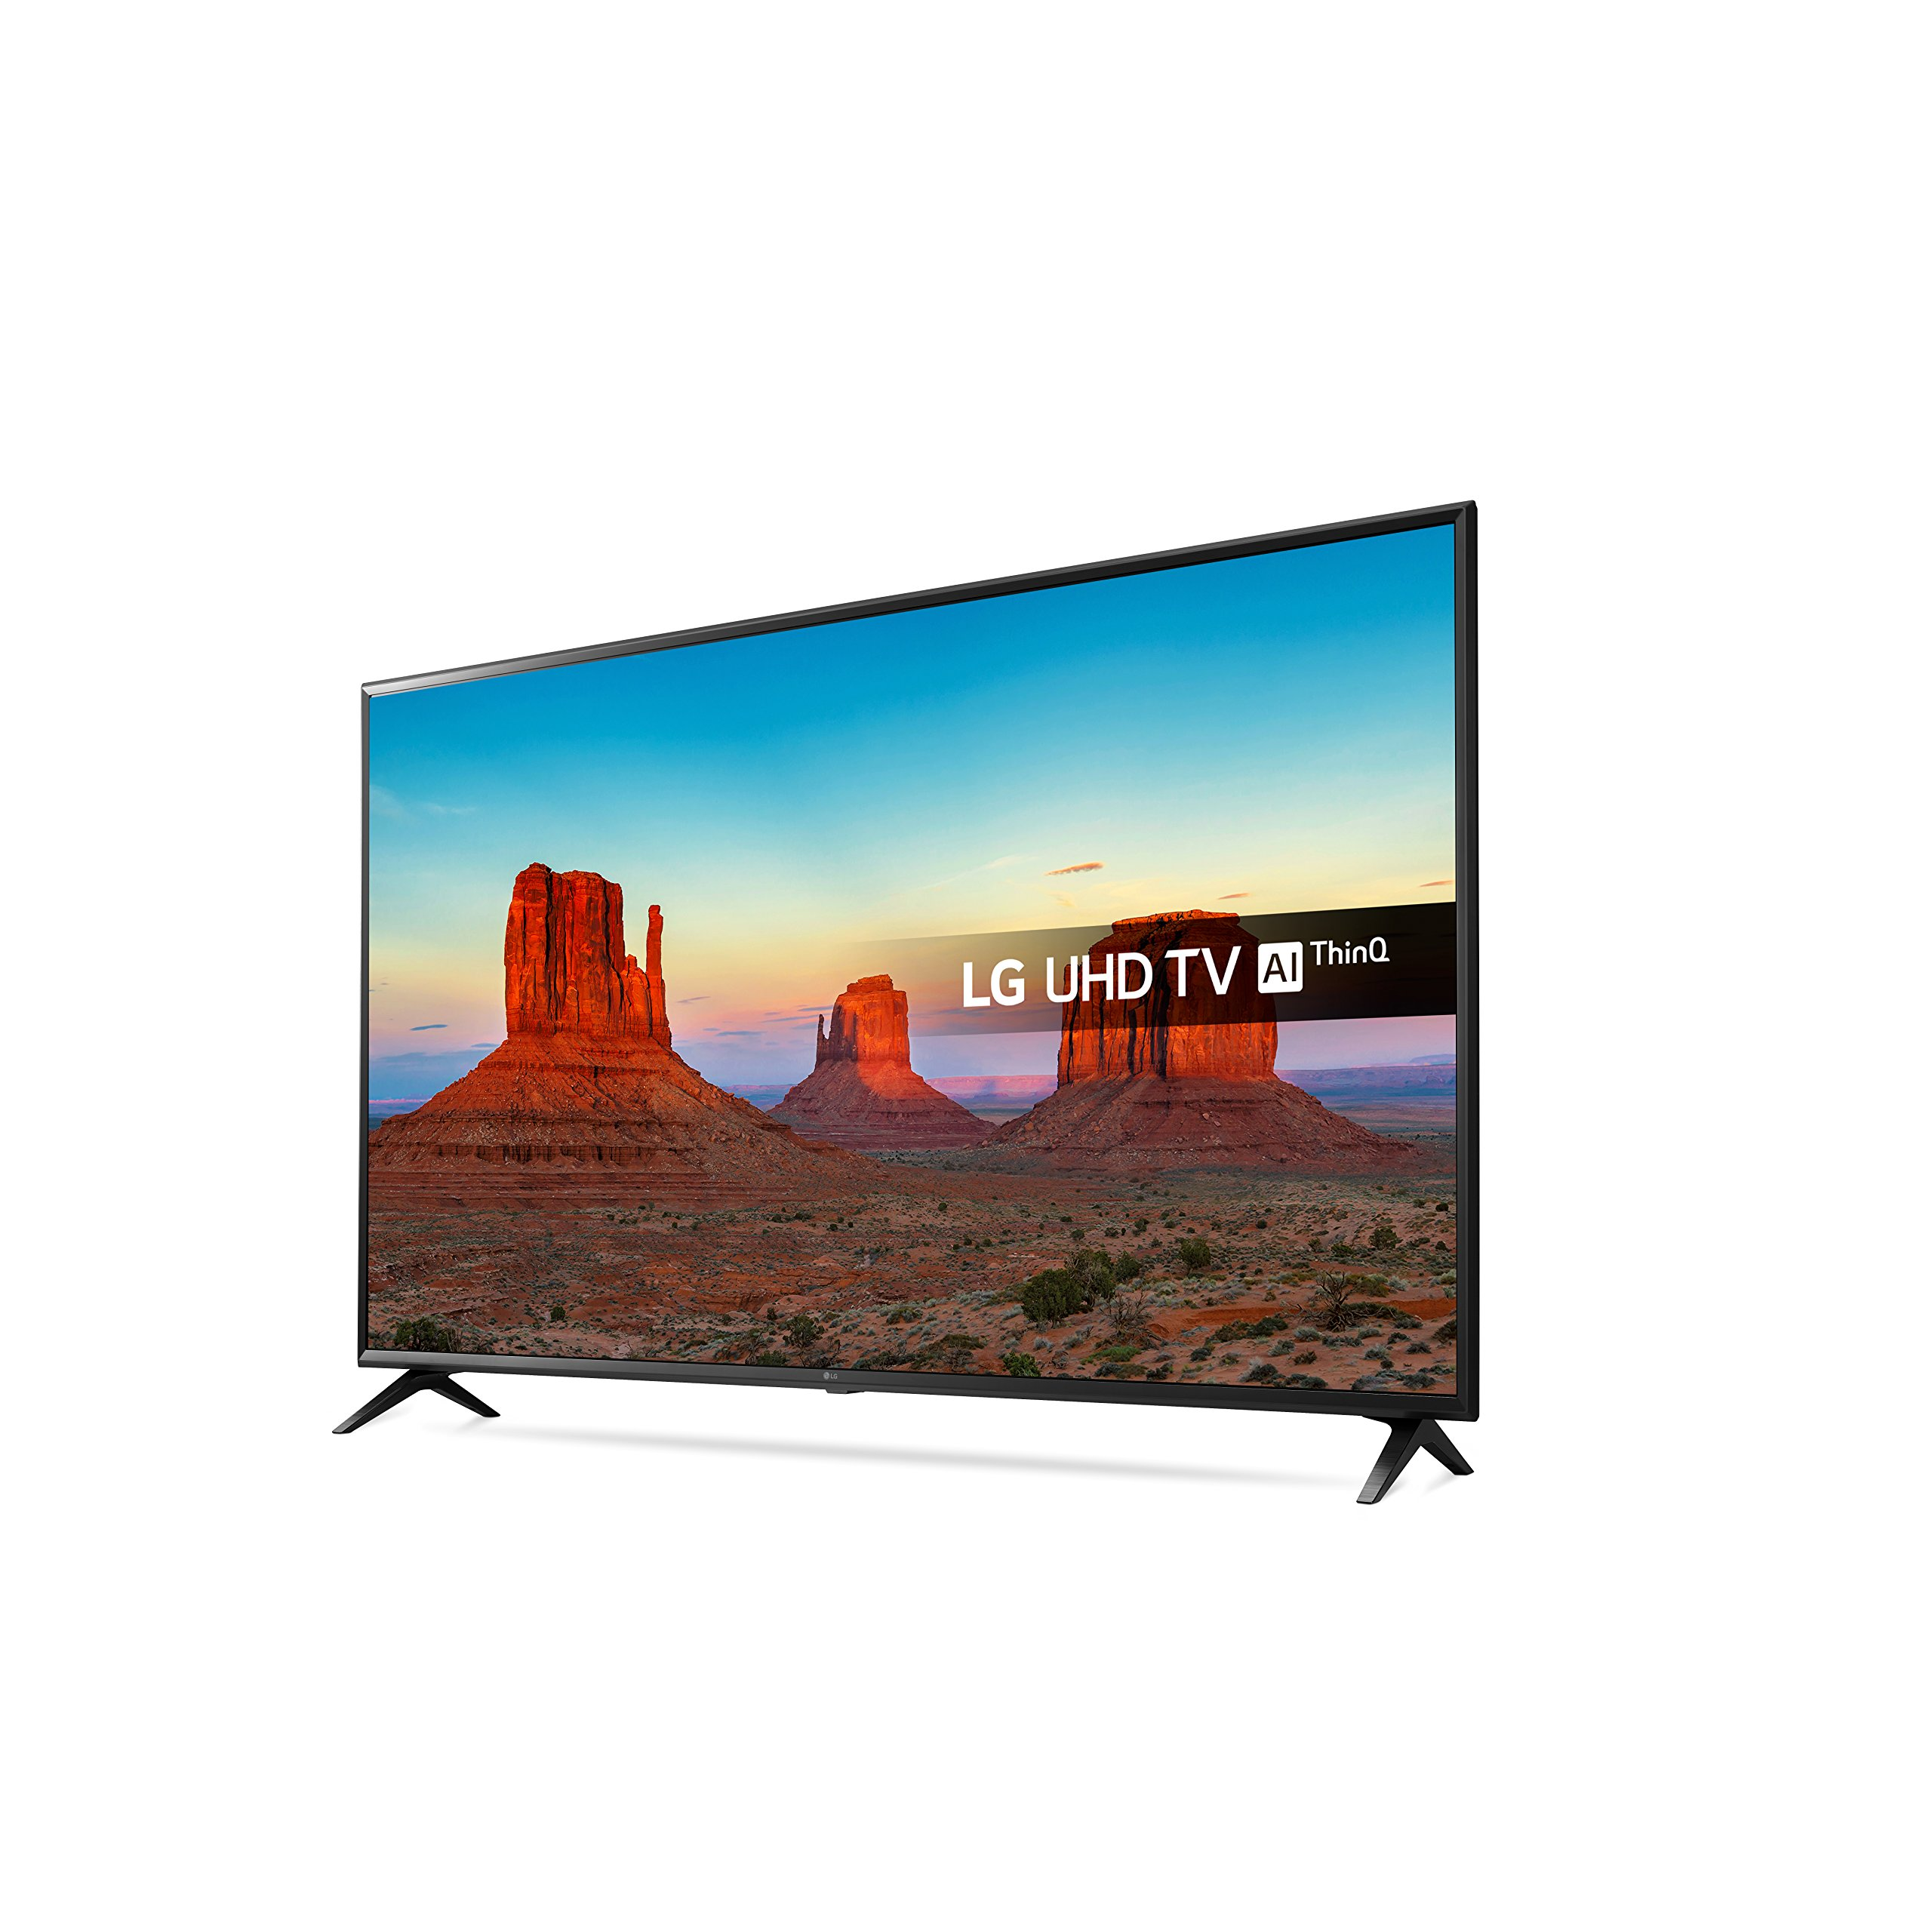 LG Electronics 65uk6300plb de 65 Pulgadas uhd 4k HDR Smart TV led con TDT Play: Amazon.es: Electrónica